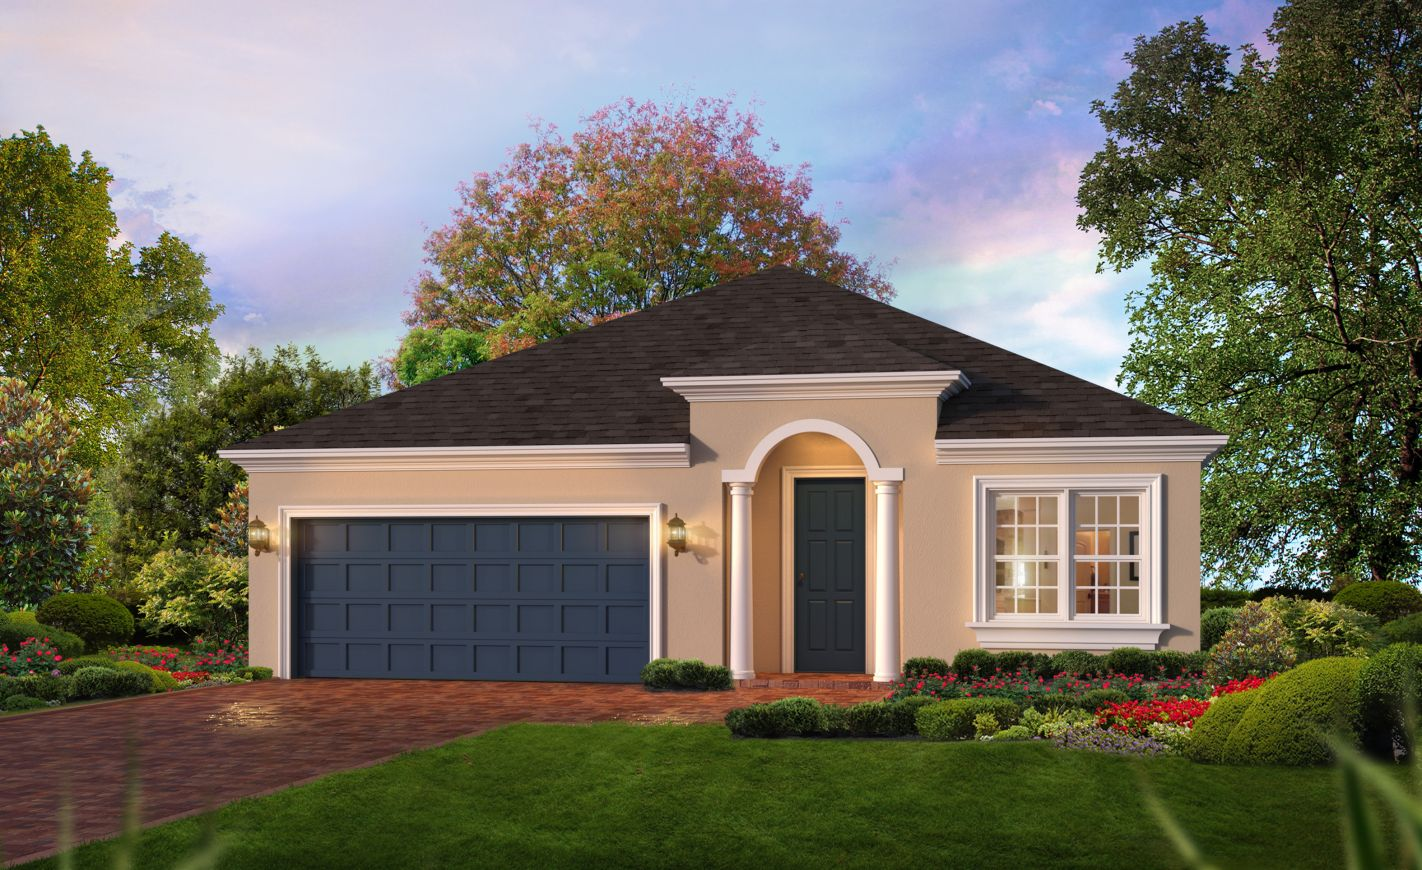 Jacksonville Homes for Sale - The Monterey at Tamaya